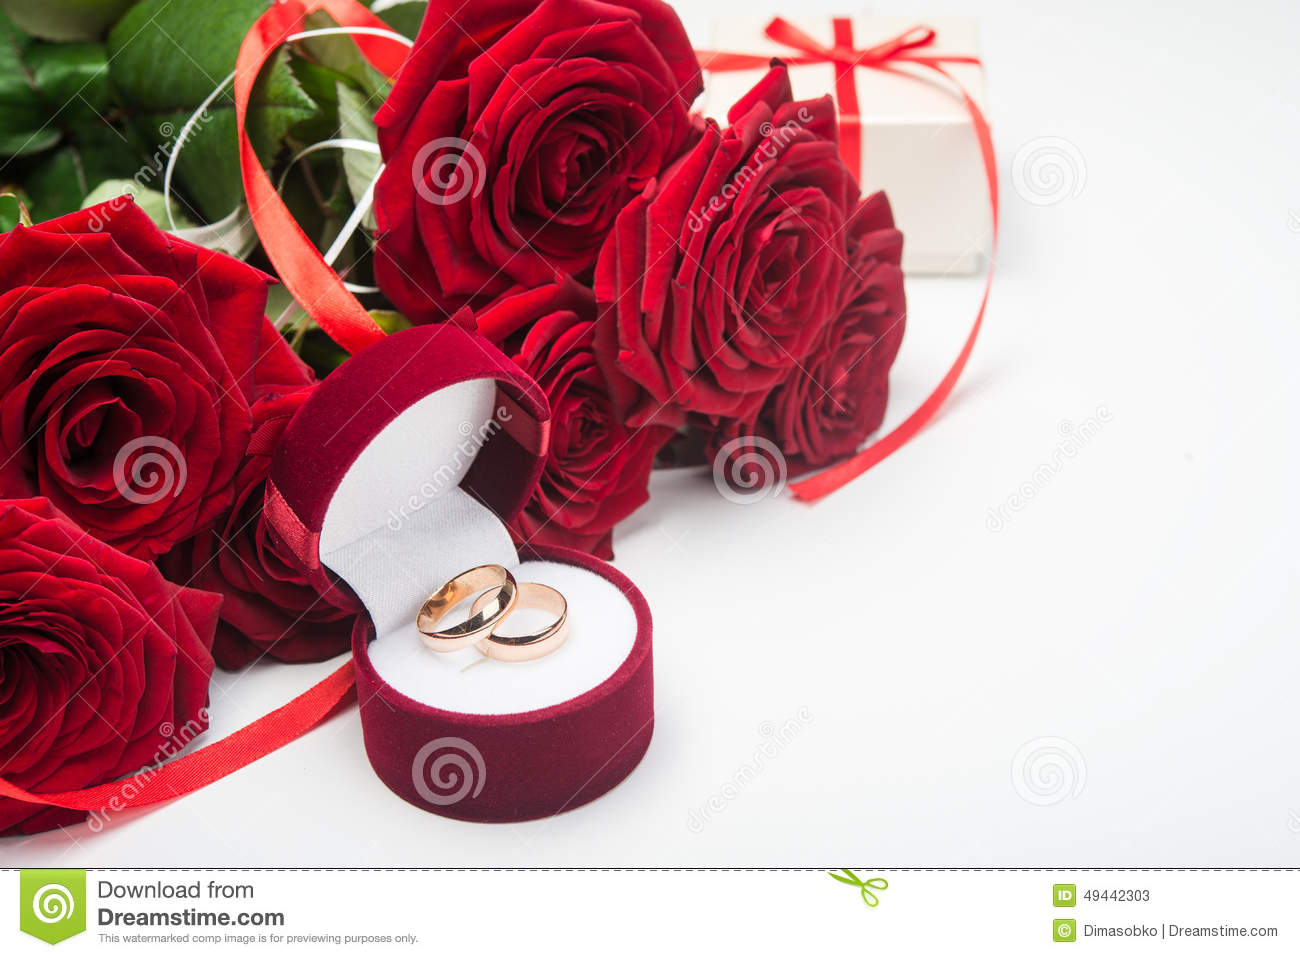 Pics photos heart black wallpaper romantic love pictures - Romantic Red Roses Pictures To Pin On Pinterest